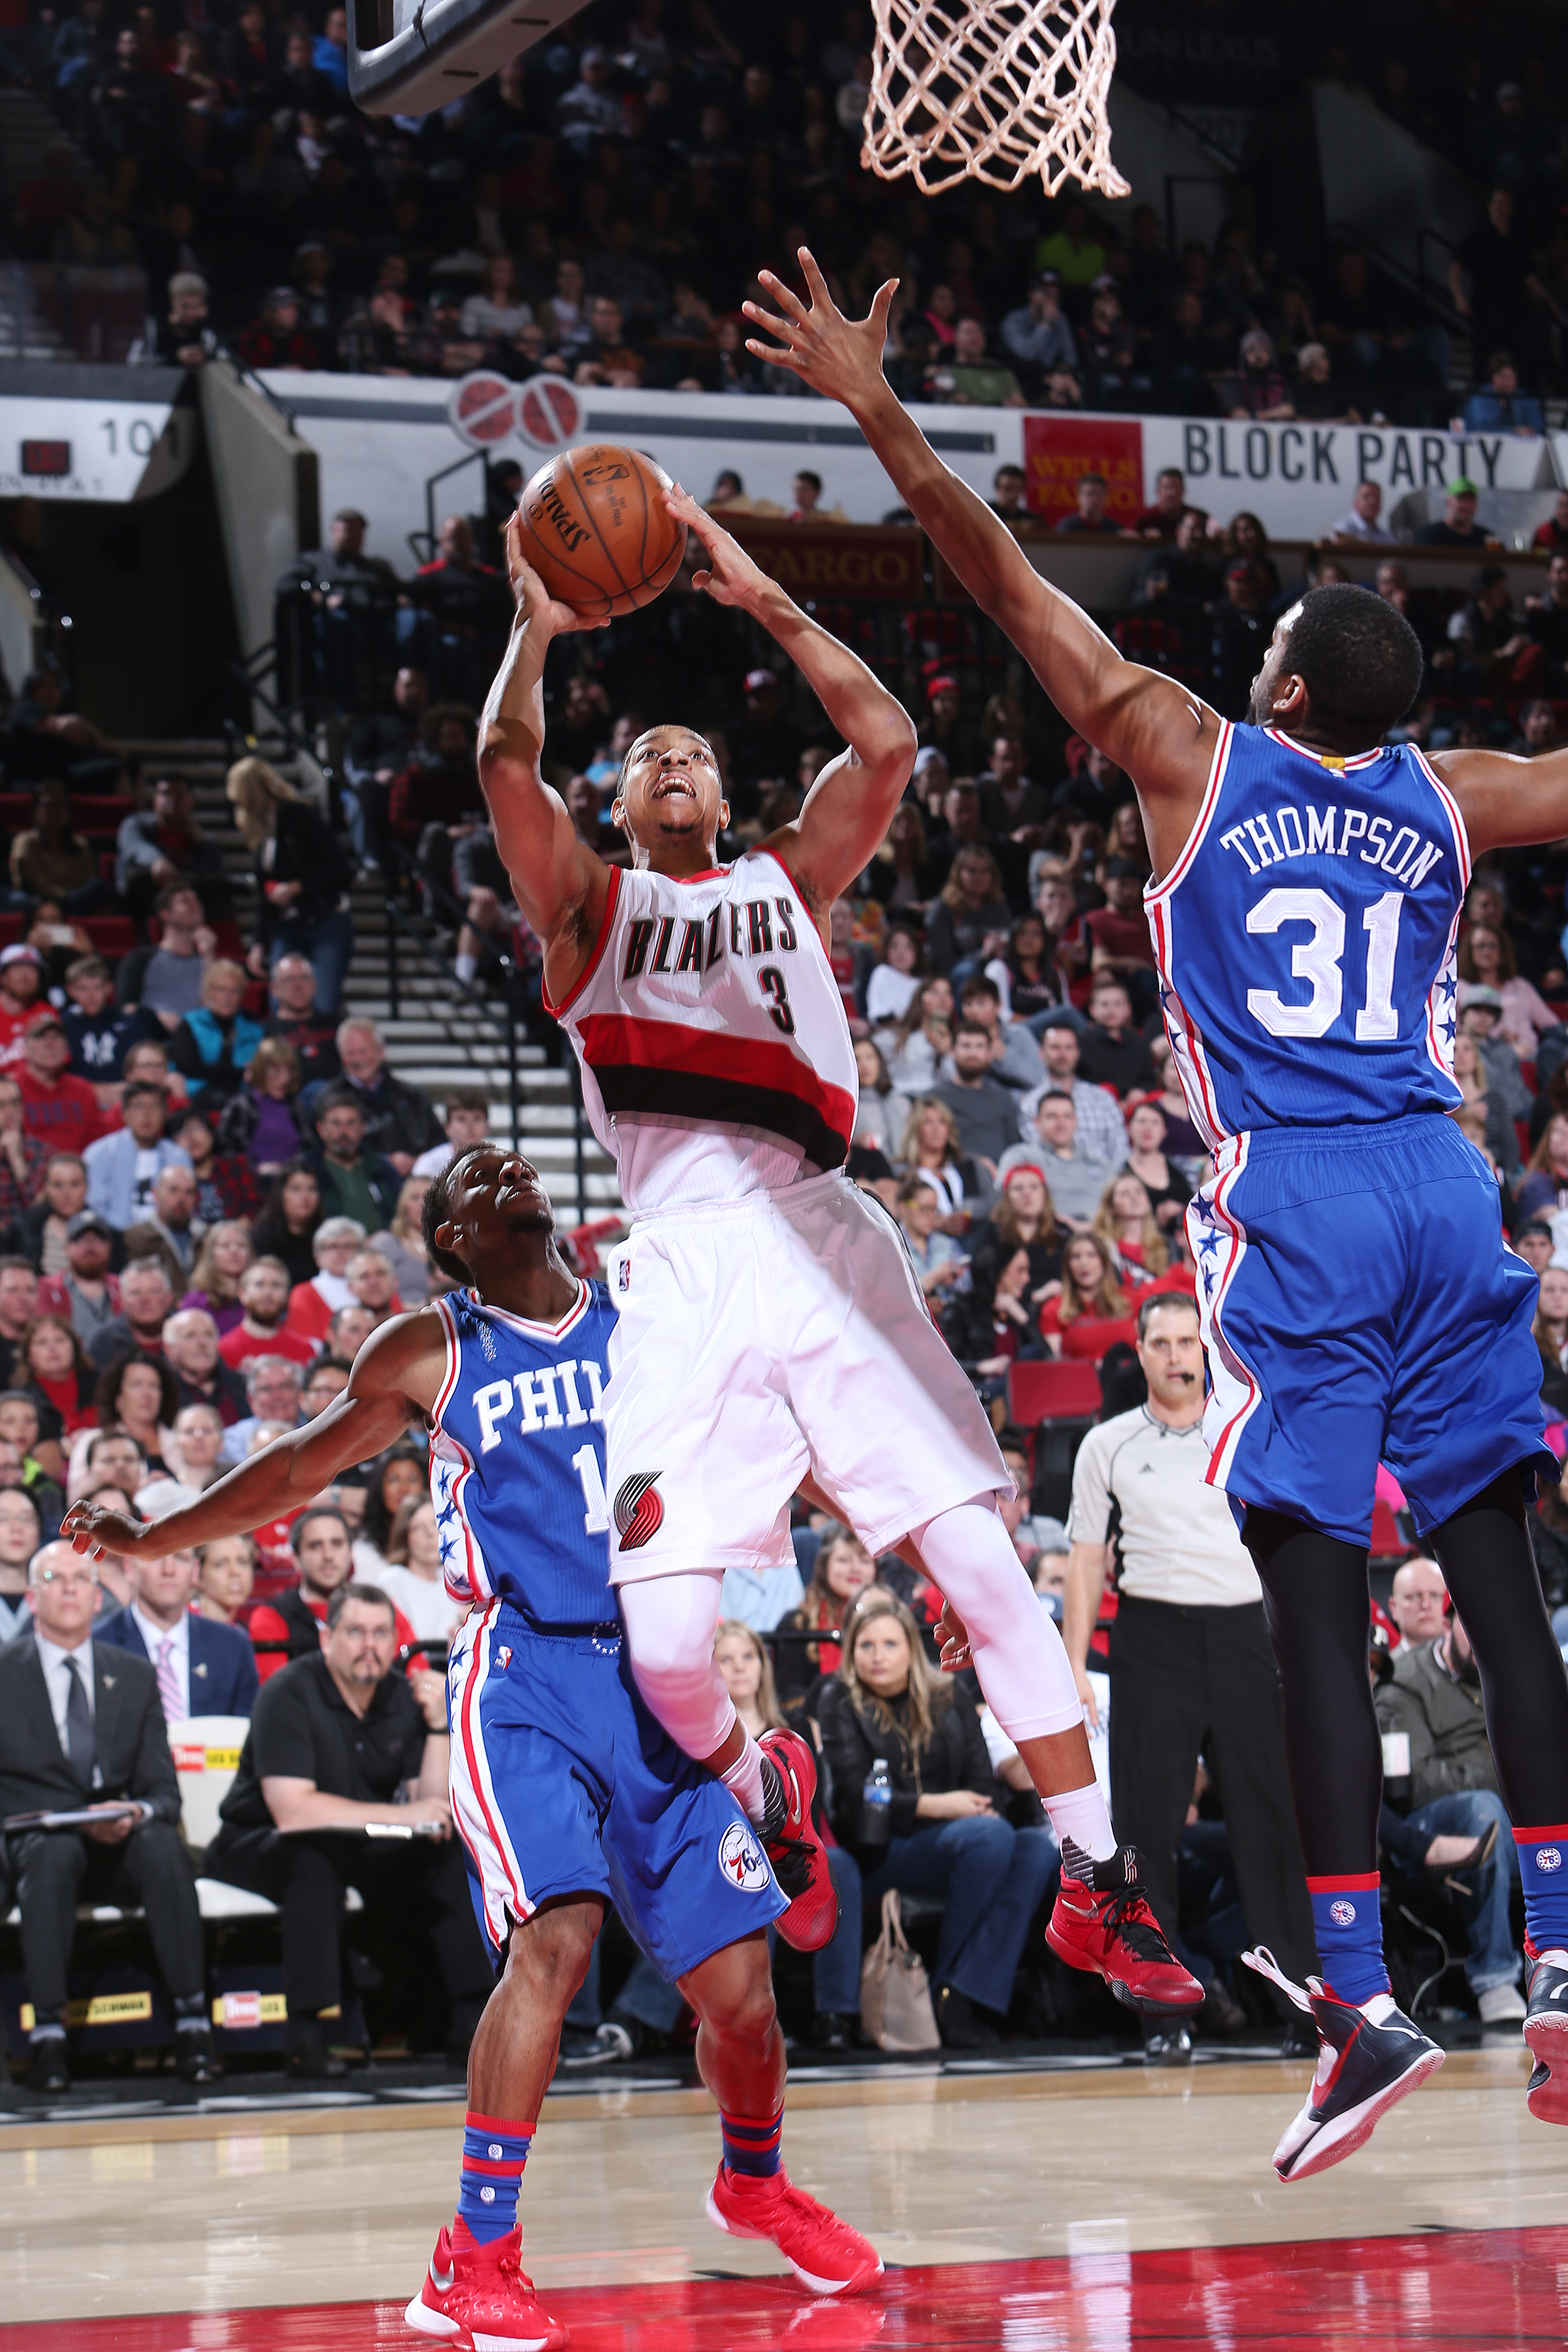 PORTLAND, OR - MARCH 26:  C.J. McCollum #3 of the Portland Trail Blazers shoots the ball against the Philadelphia 76ers on March 26, 2016 at the Moda Center in Portland, Oregon. (Photo by Sam Forencich/NBAE via Getty Images)